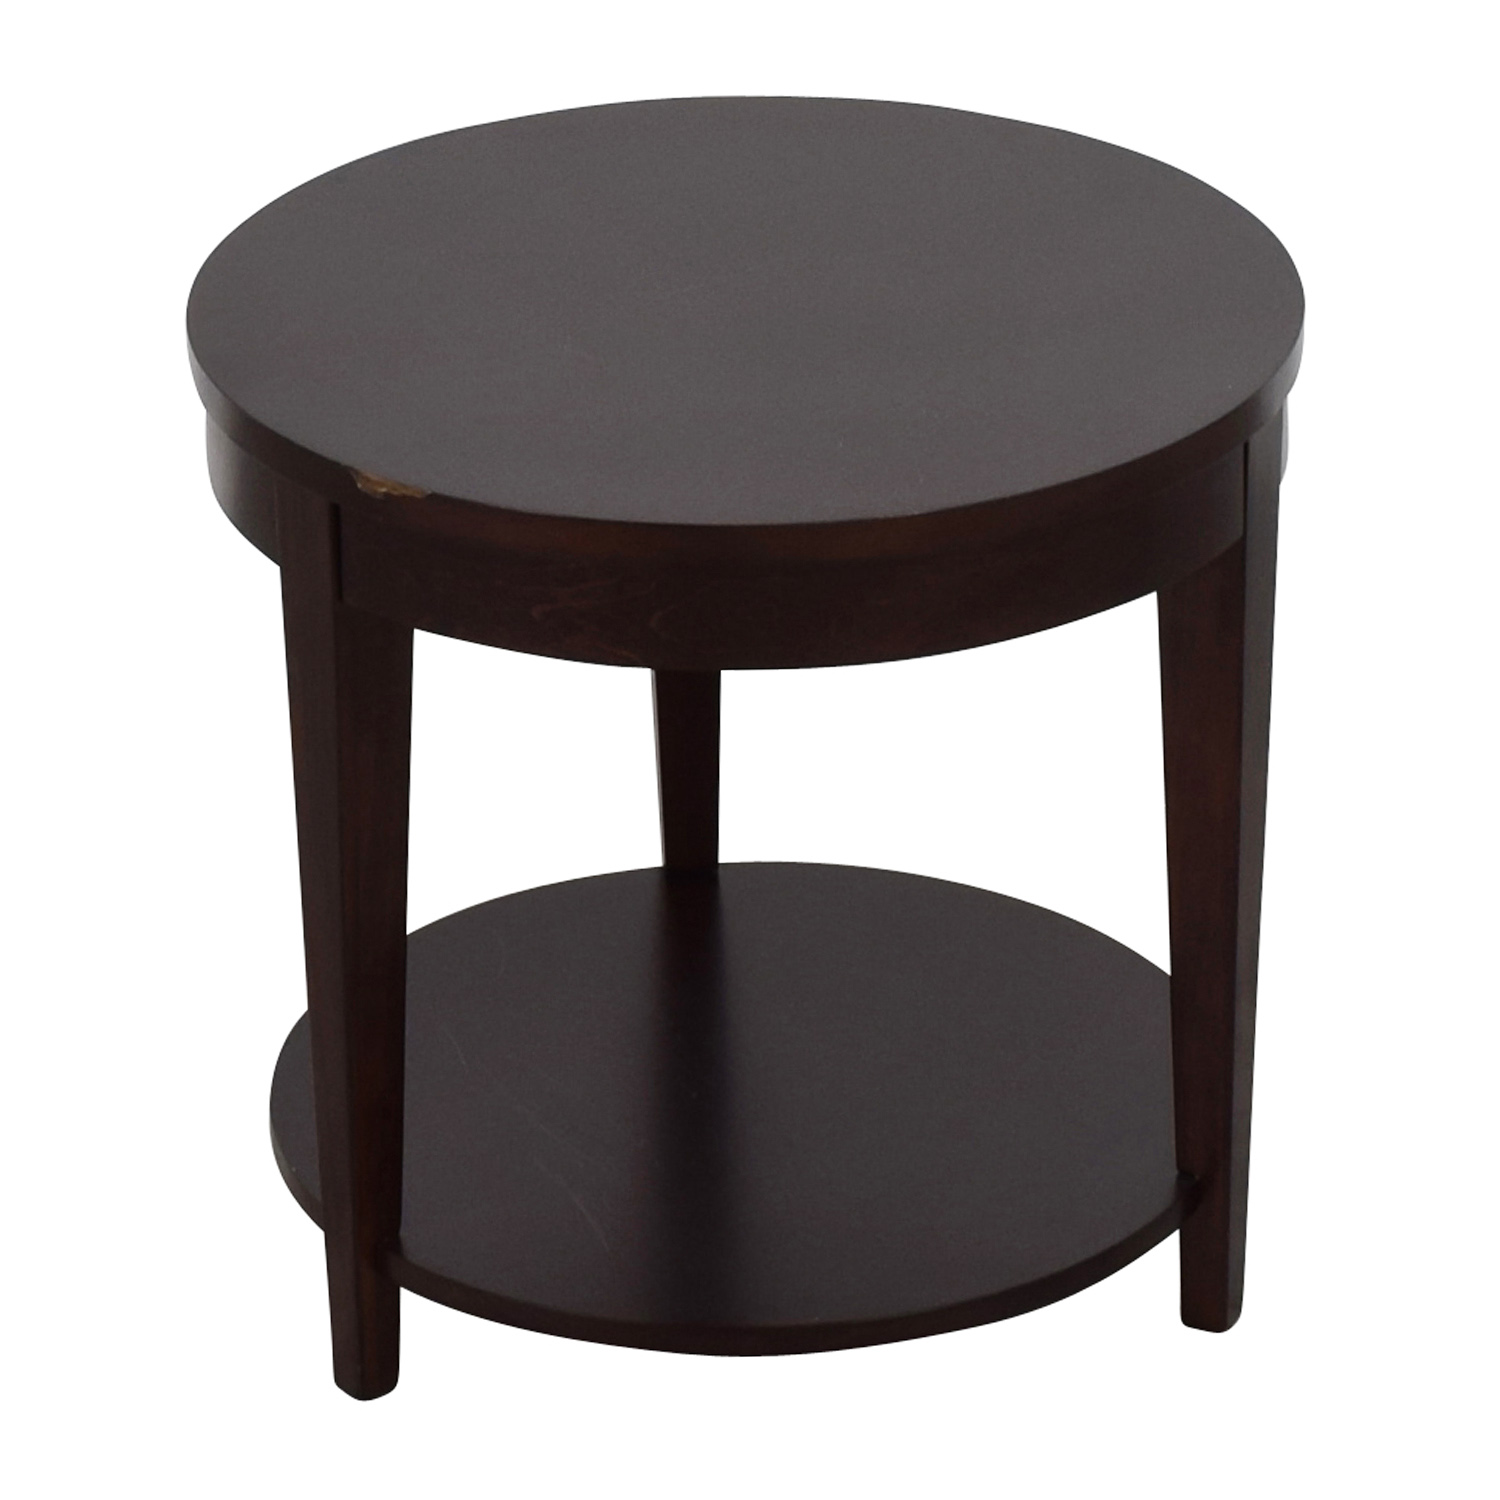 Macys Round Night Stand / Coffee Tables